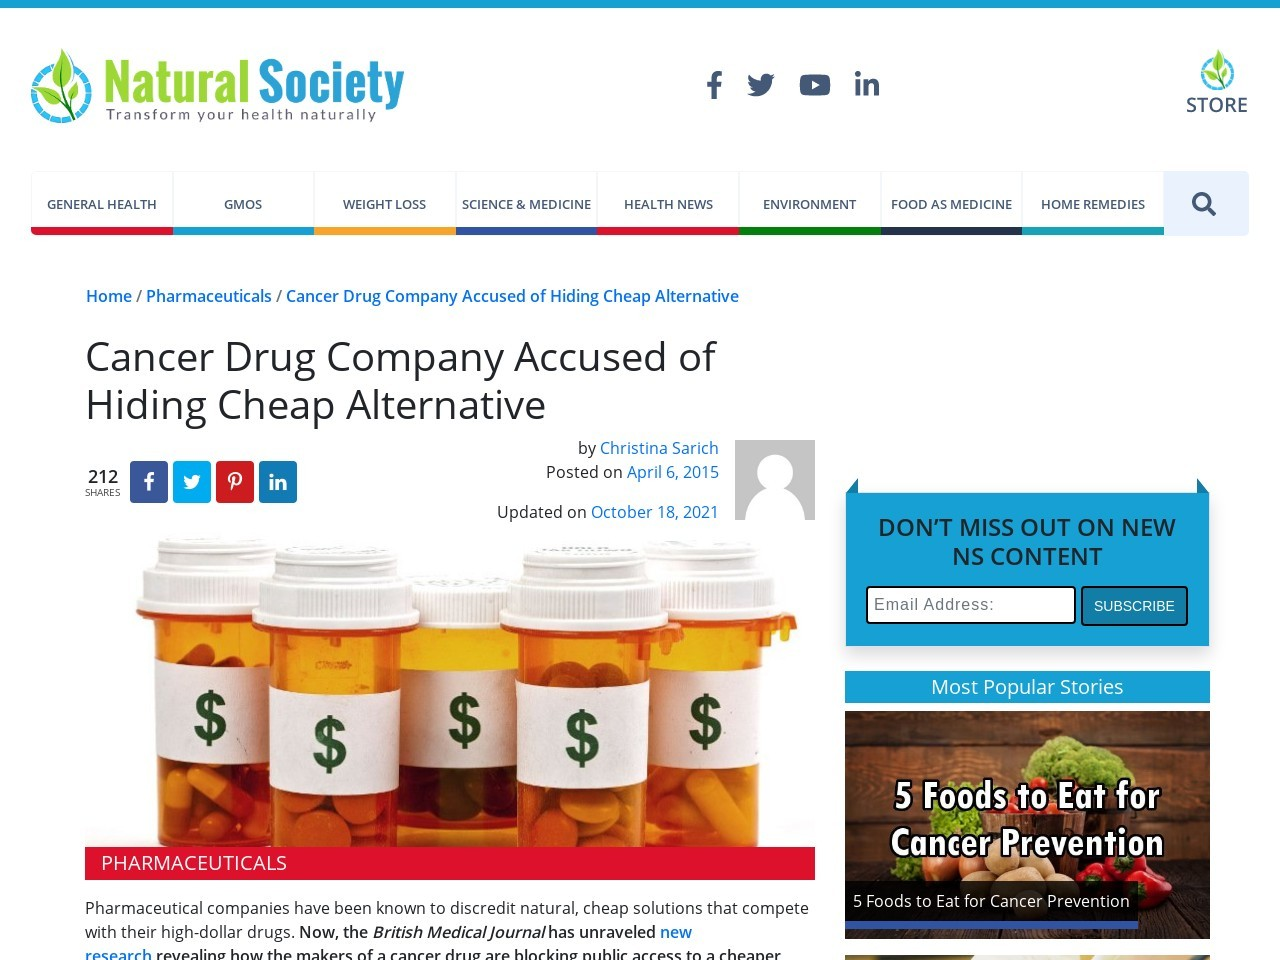 Cancer Drug Company Accused of Hiding Cheap Alternative